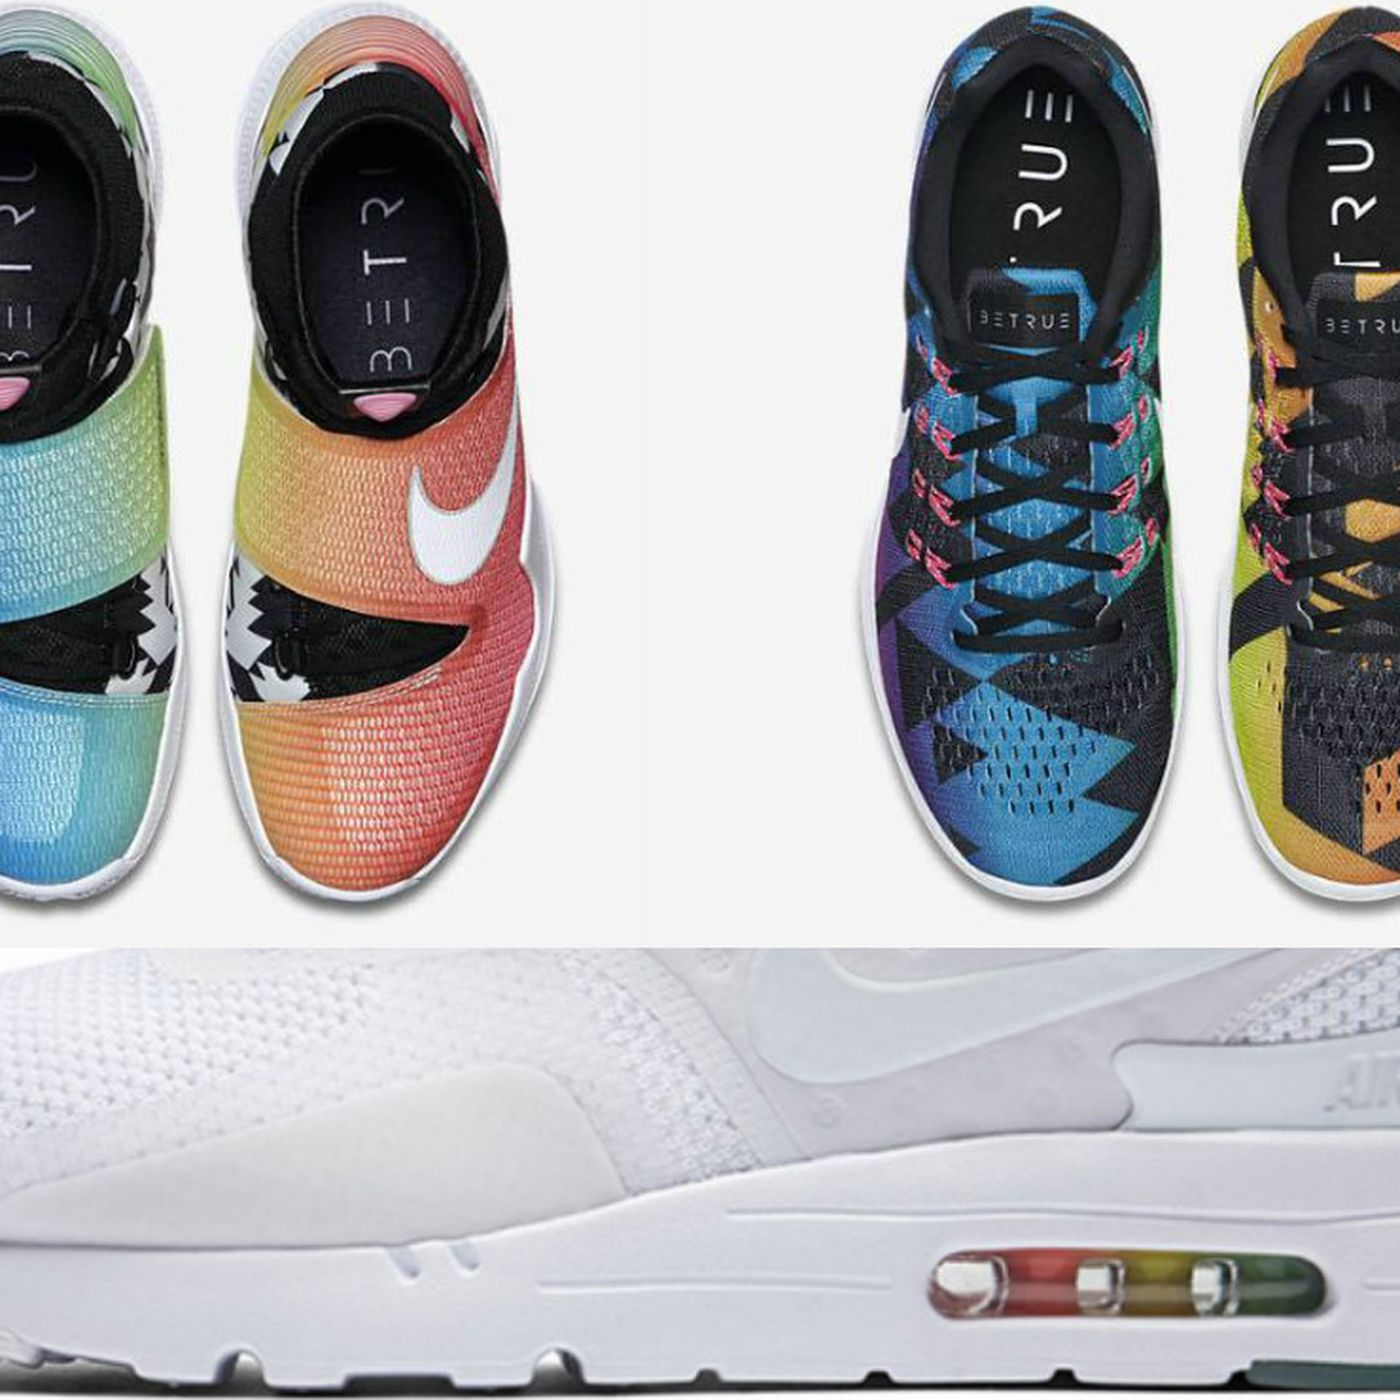 Nike releases 2016 BeTrue line this week featuring rainbows, triangles and  Air Max Zero - Outsports